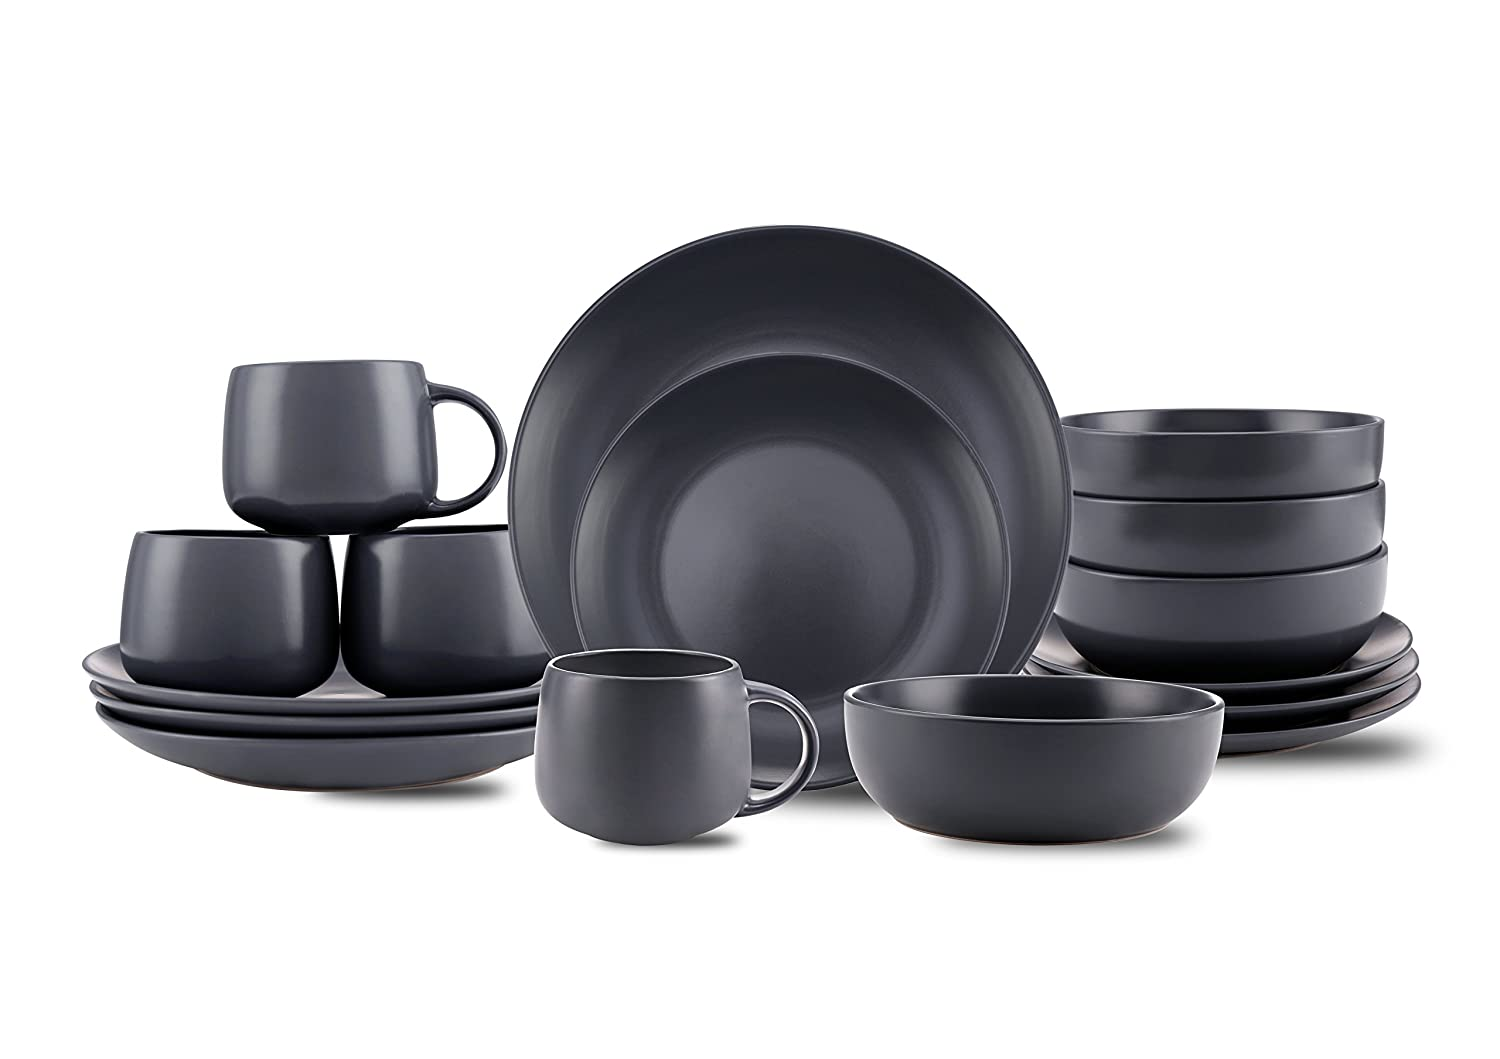 10 Strawberry Street Wazee Matte 16 Pc Coupe Dinnerware Set Charcoal Gray  sc 1 st  rcrcshop.top & 10 Strawberry Street Wazee Matte 16 Pc Coupe Dinnerware Set ...